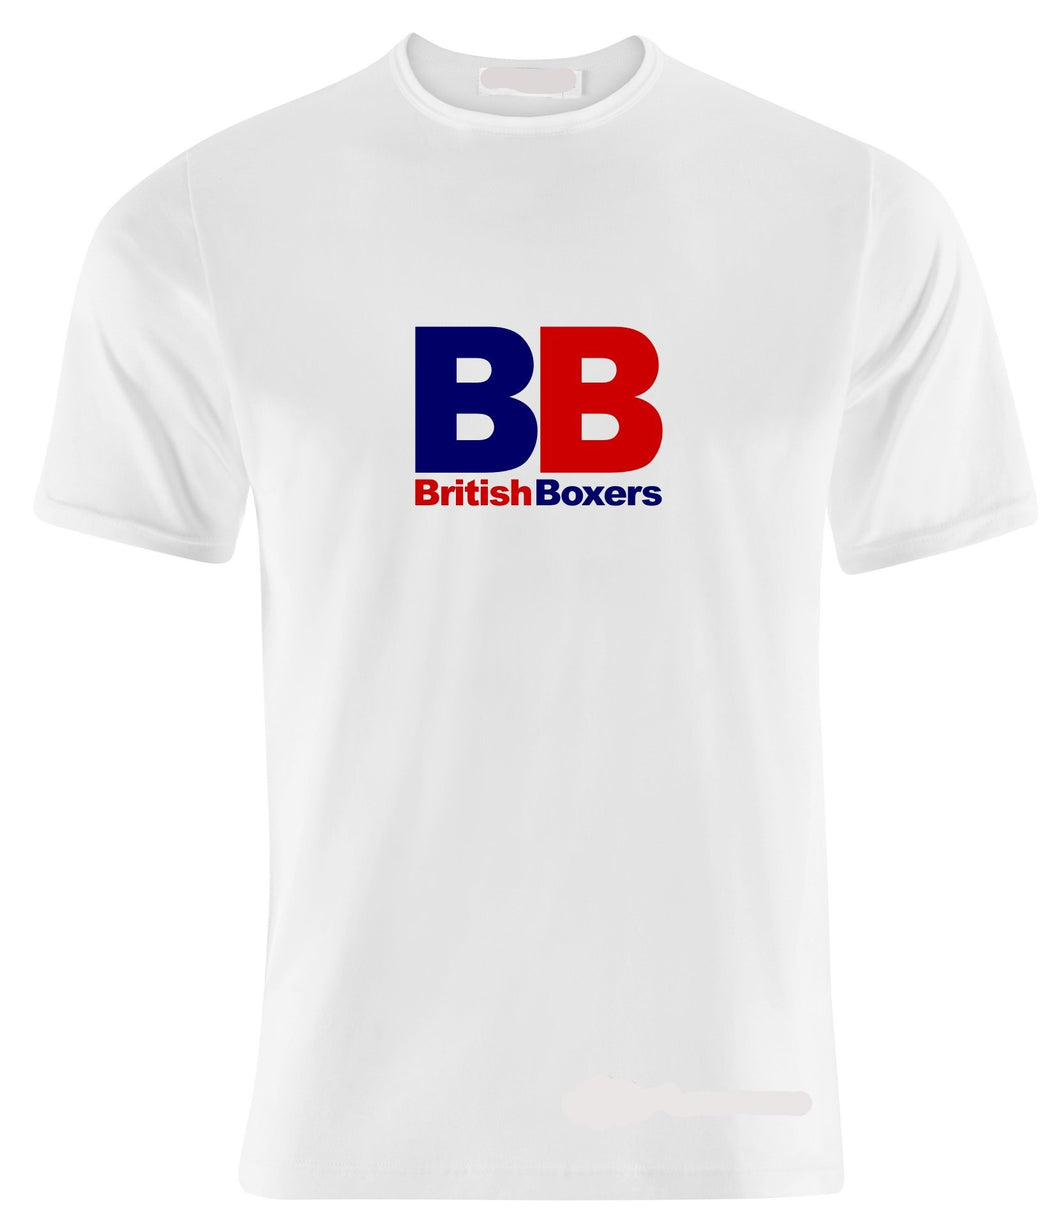 BB BRITISH BOXERS BOXING T-SHIRT